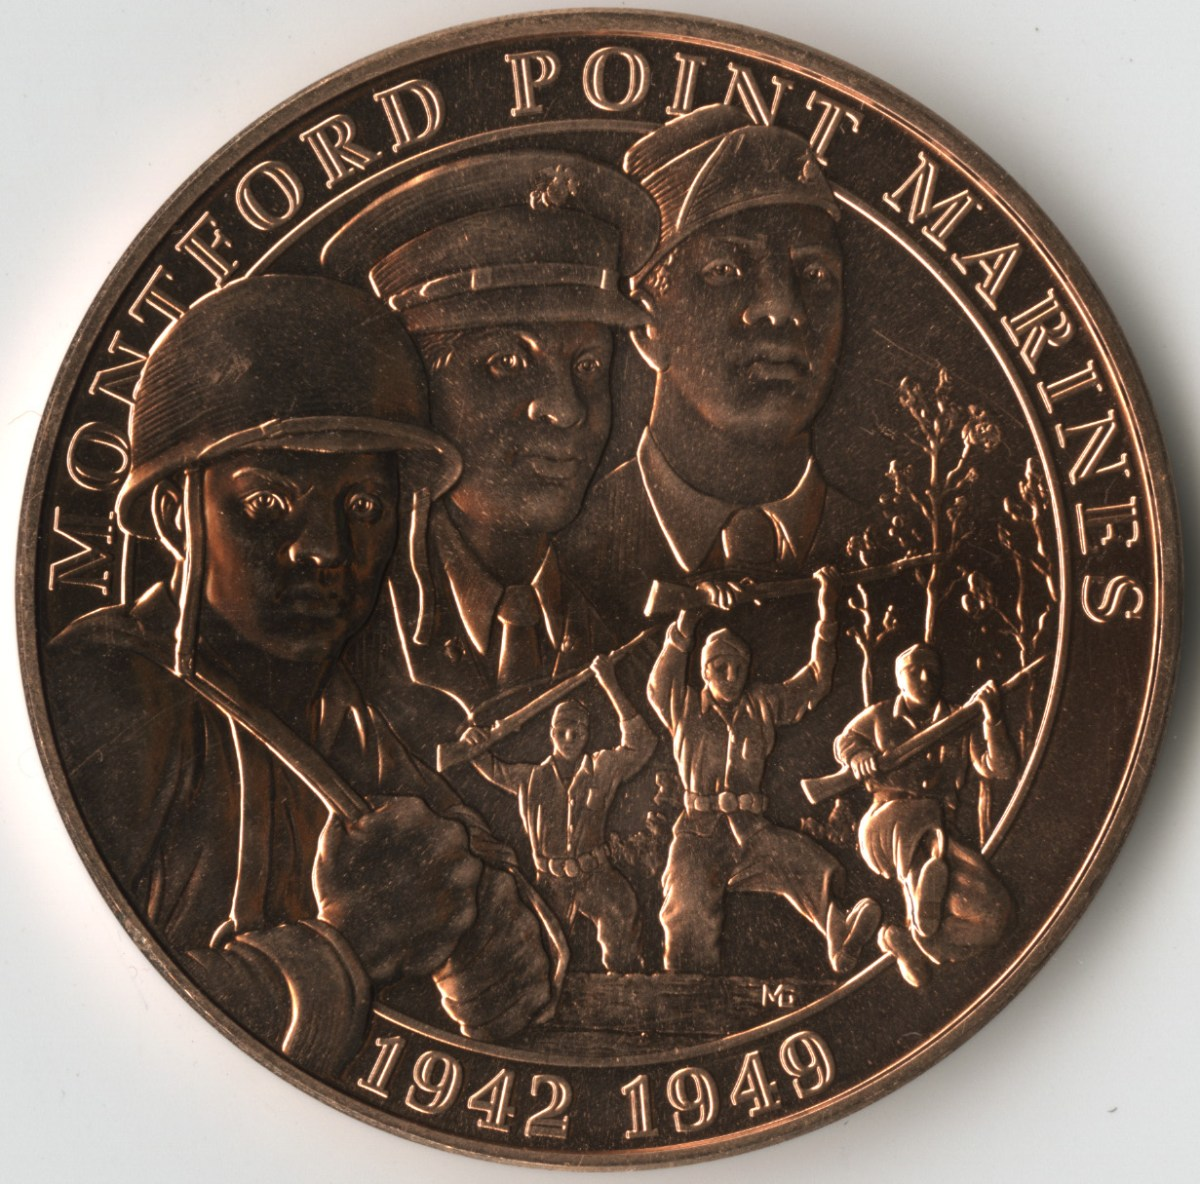 A Medal of Distinction:  Remembering the Montford Point Marines